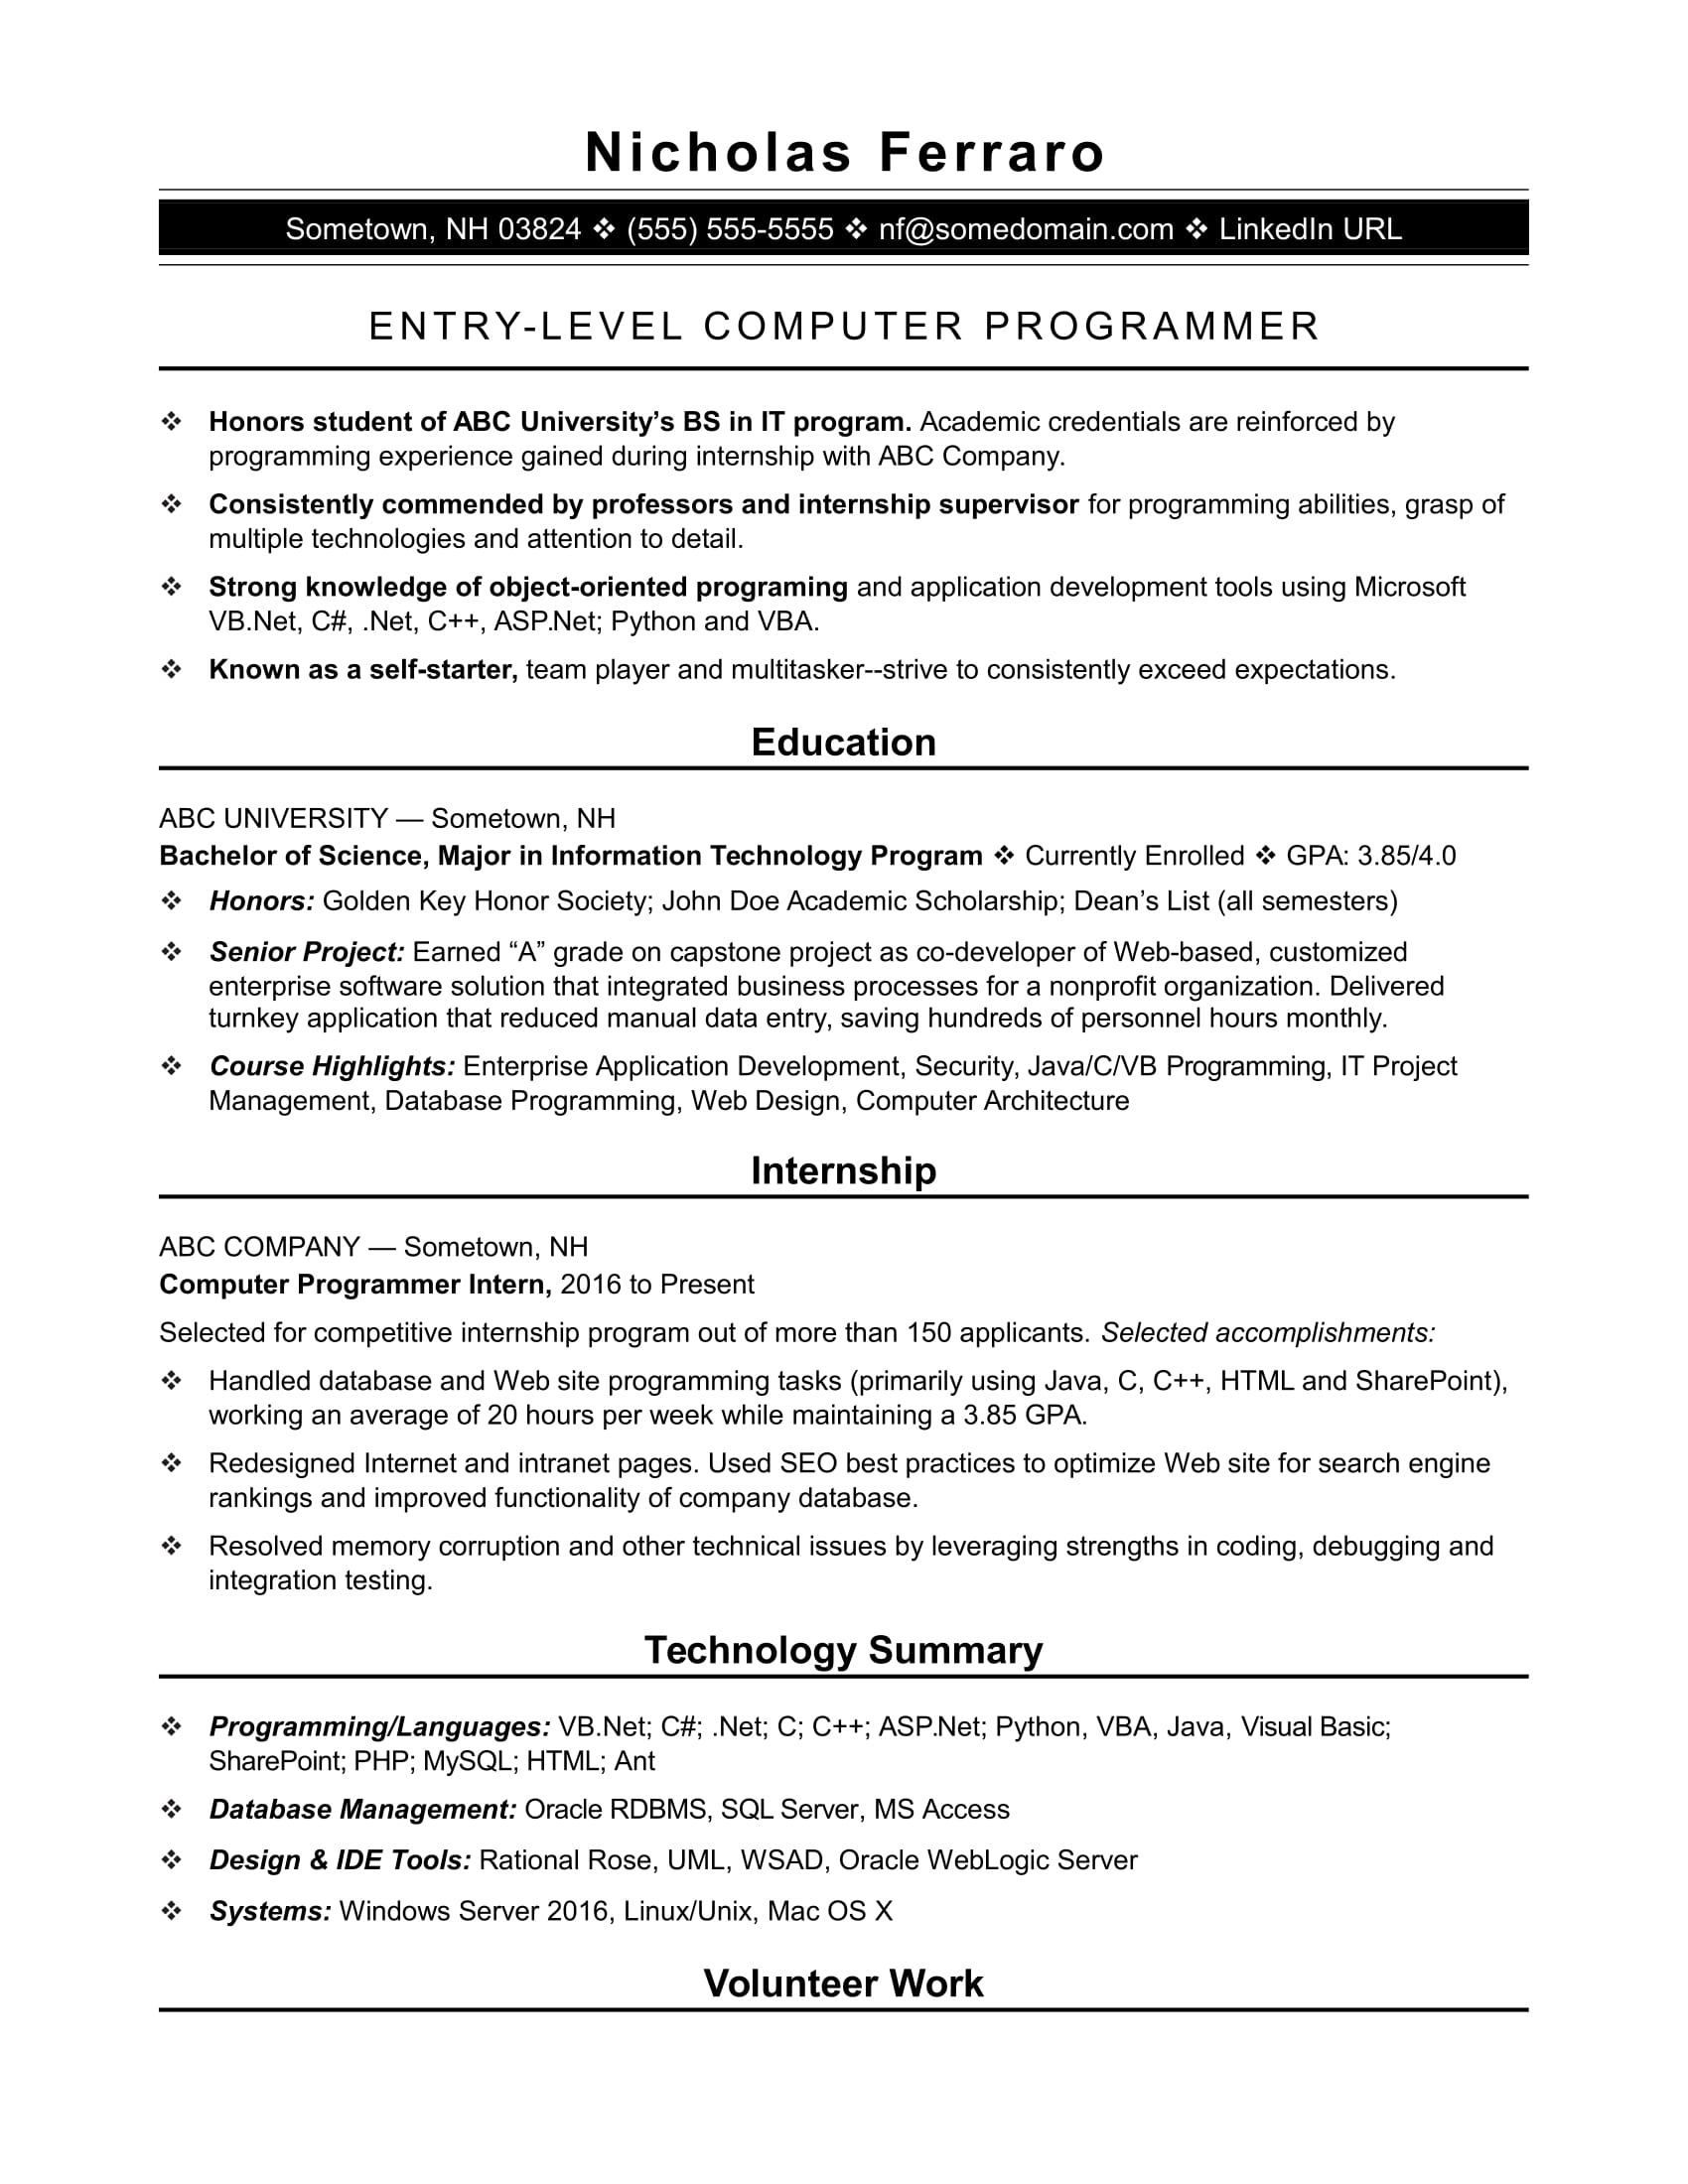 sample resume for an entry level computer programmer - Entry Level Java Developer Resume